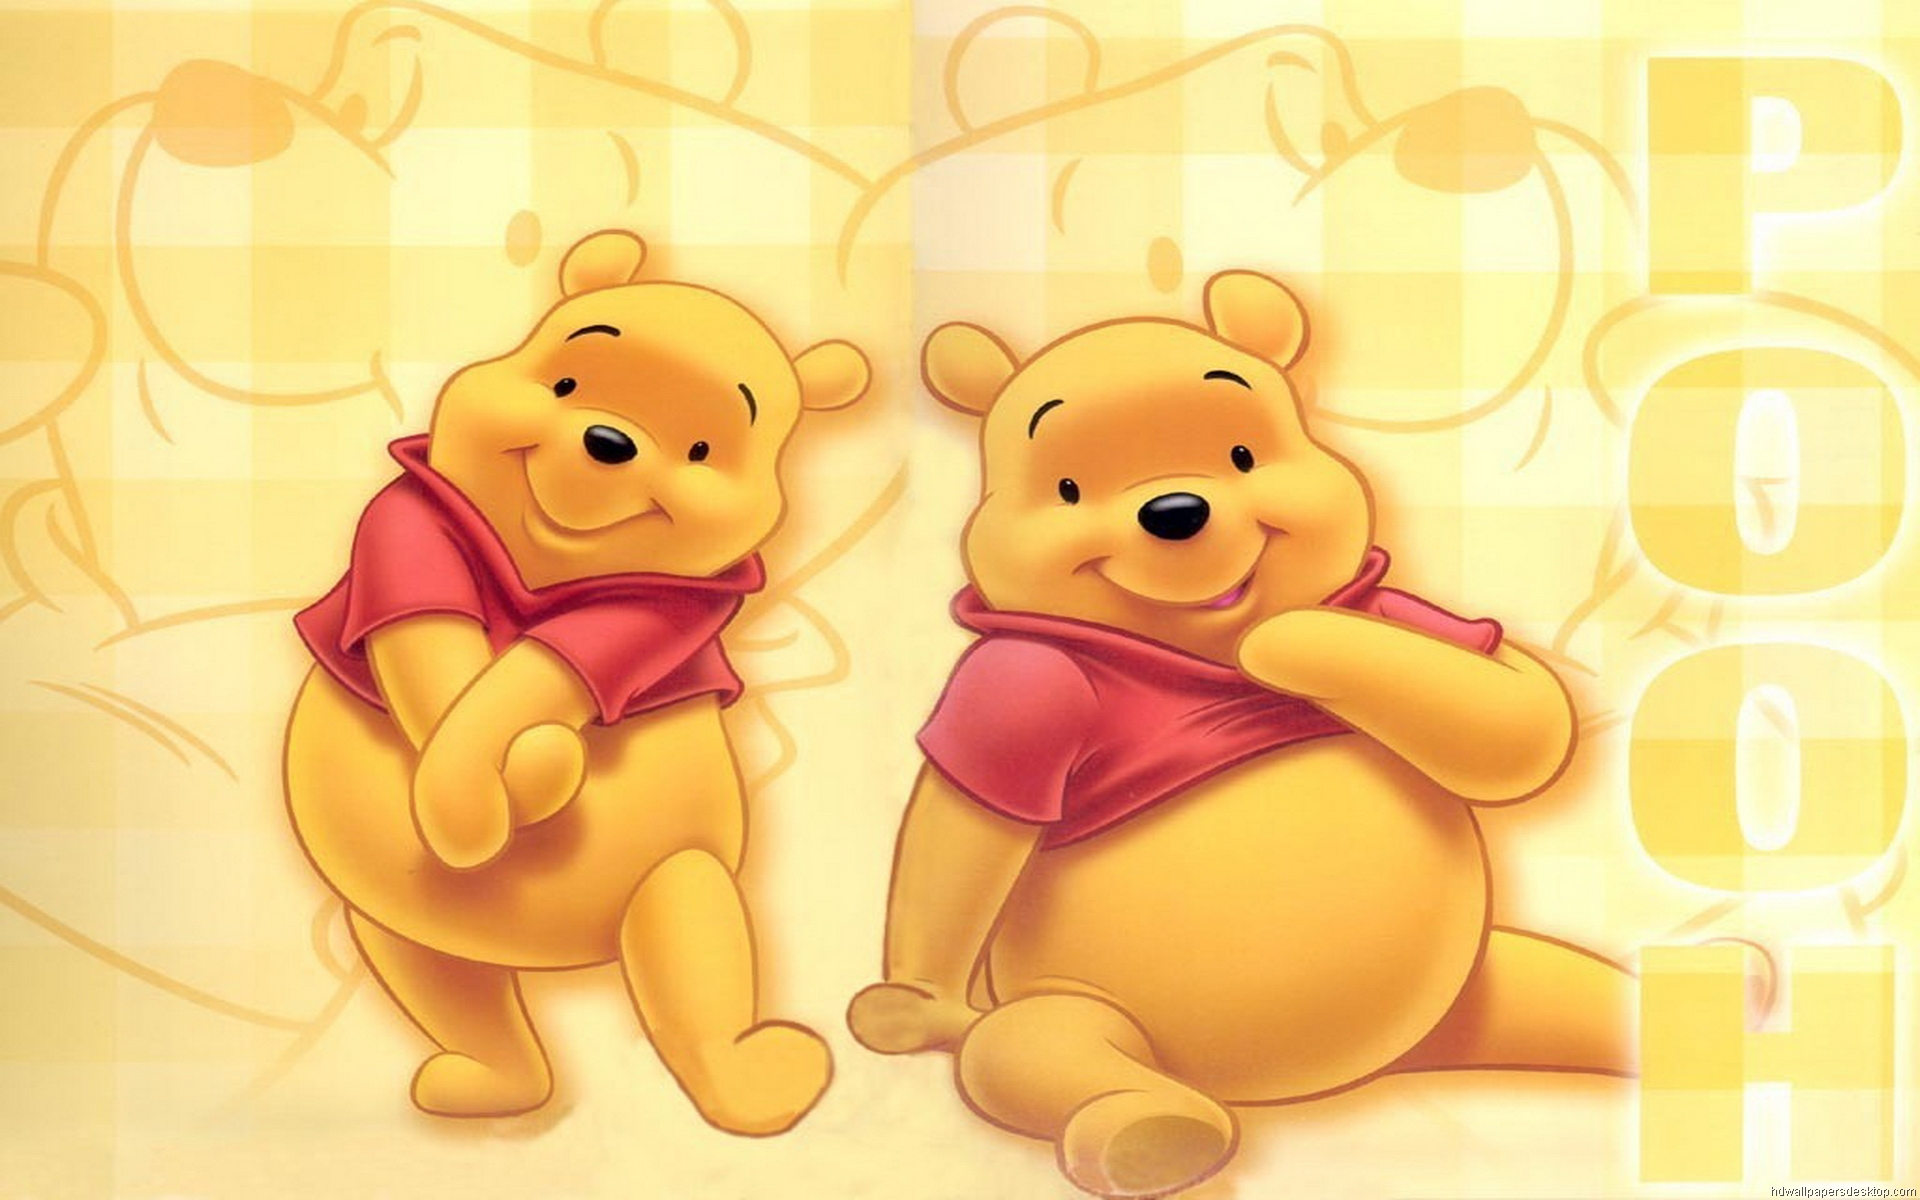 Winnie the pooh full hd wallpaper and background image 1920x1200 tv show winnie the pooh wallpaper download thecheapjerseys Image collections